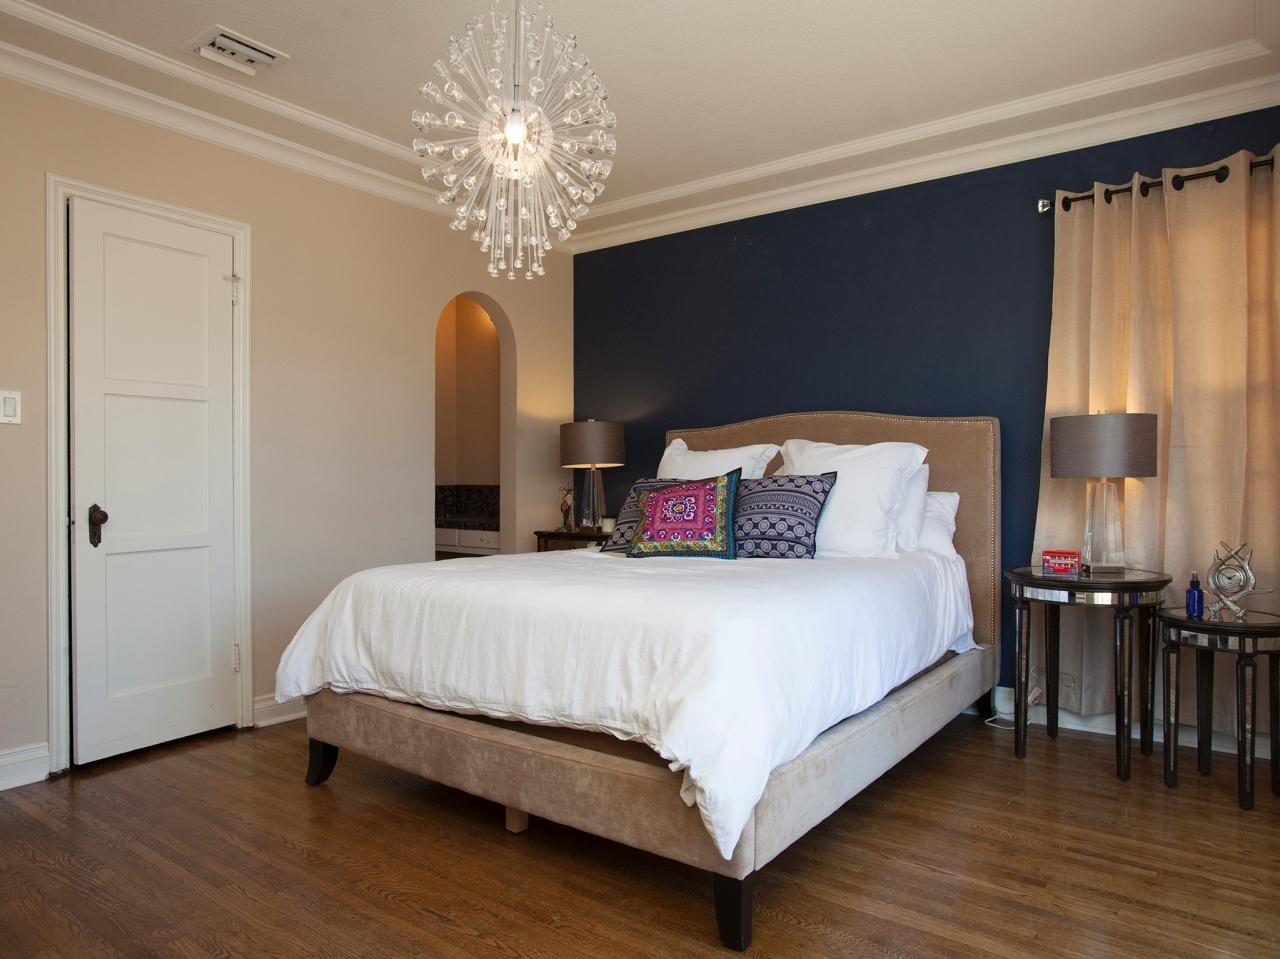 Wall Accents With Beige Within Current Mesmerizing Bedroom Interior Design With Black Beige Painted Wall (View 14 of 15)